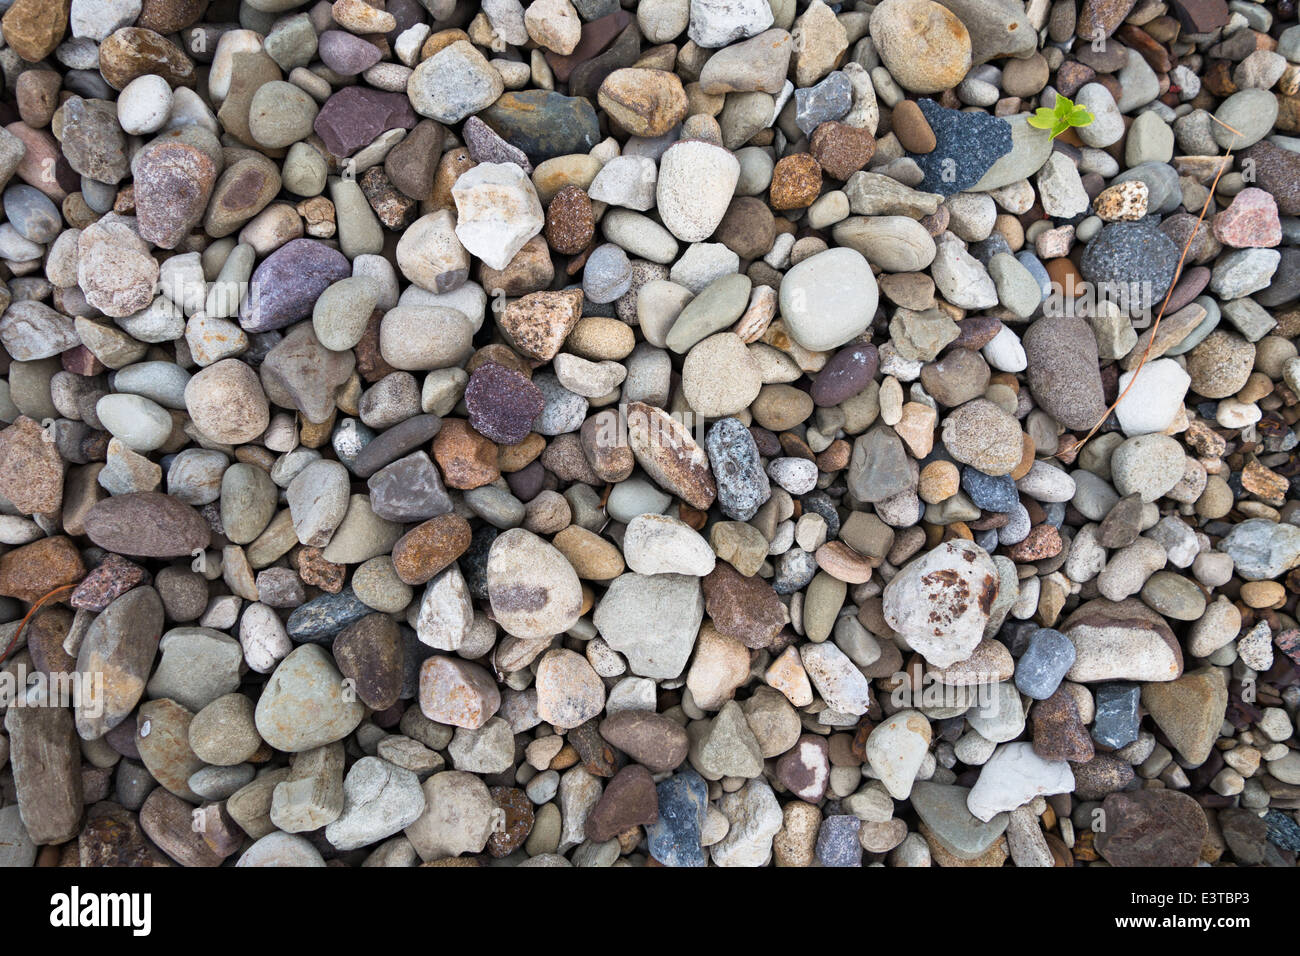 c48034abbaeb1 Many smooth stones and pebbles of different colors